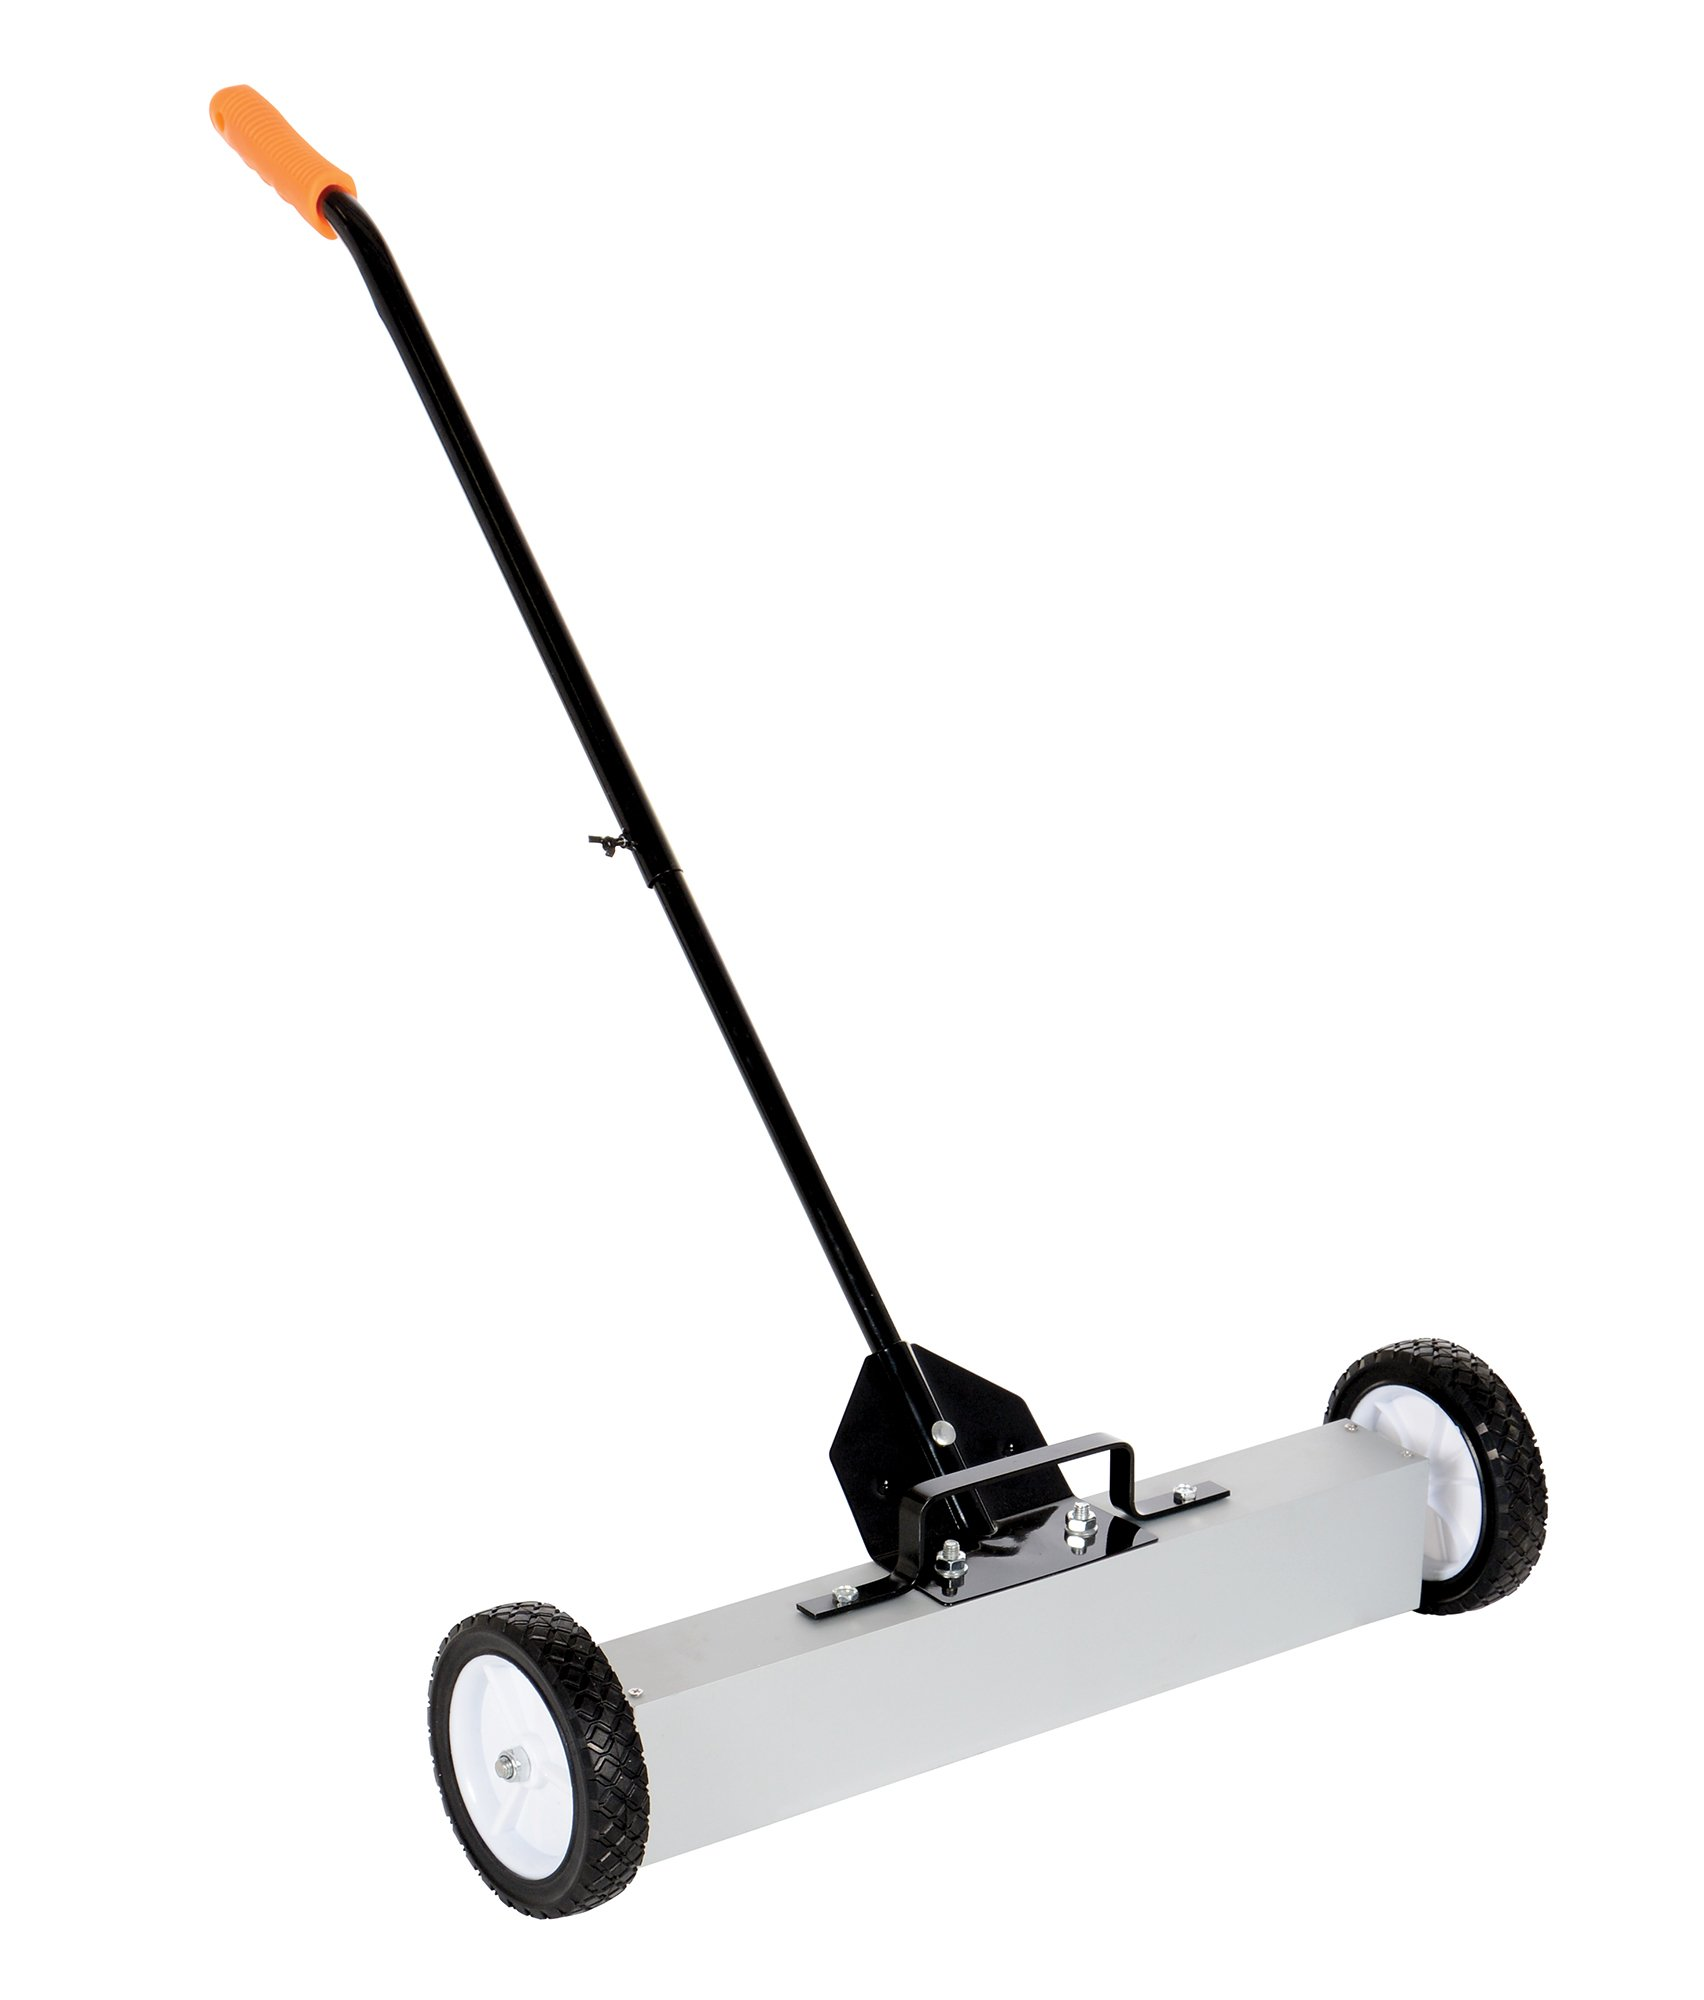 Vestil MFSR-24 Magnetic Handle Release Lever Sweeper, Overall Dimensions 32'' Length x 28'' Width x 27'' Height, 30 lb. Capacity